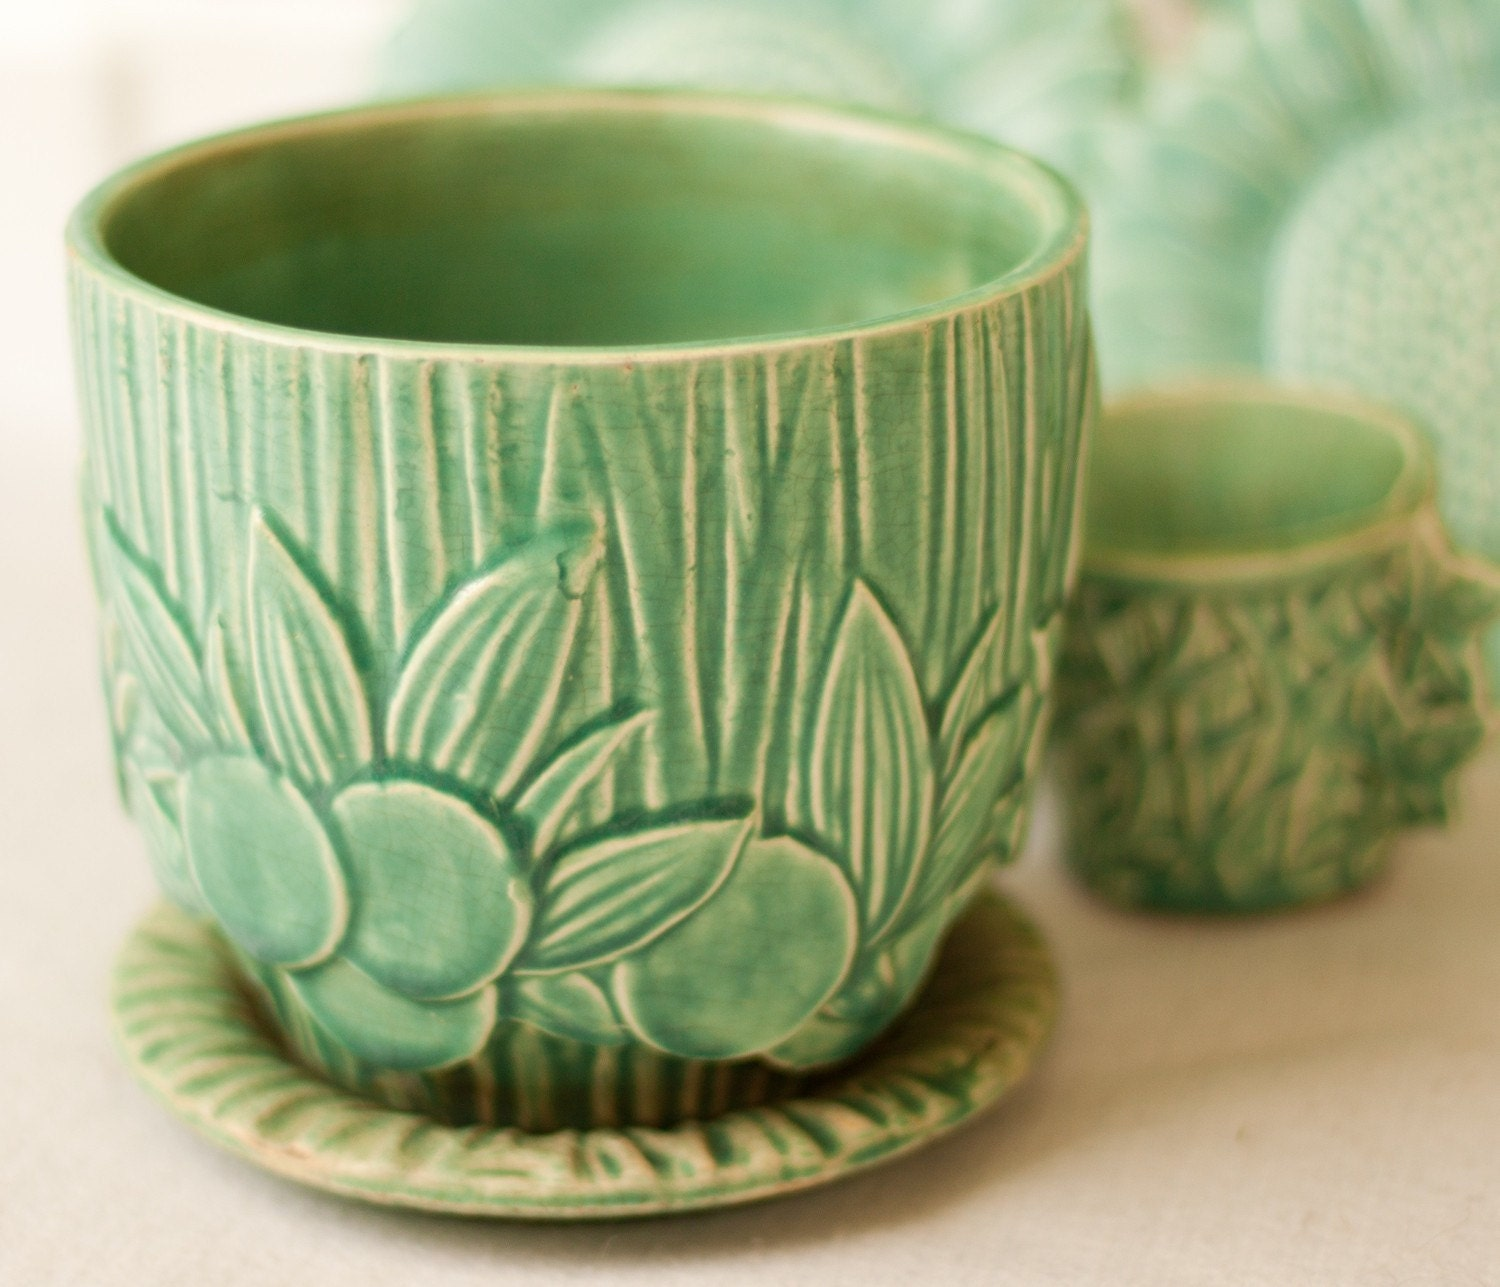 Vintage Mccoy Pottery Planter In Gloss Turquoise By Beezus